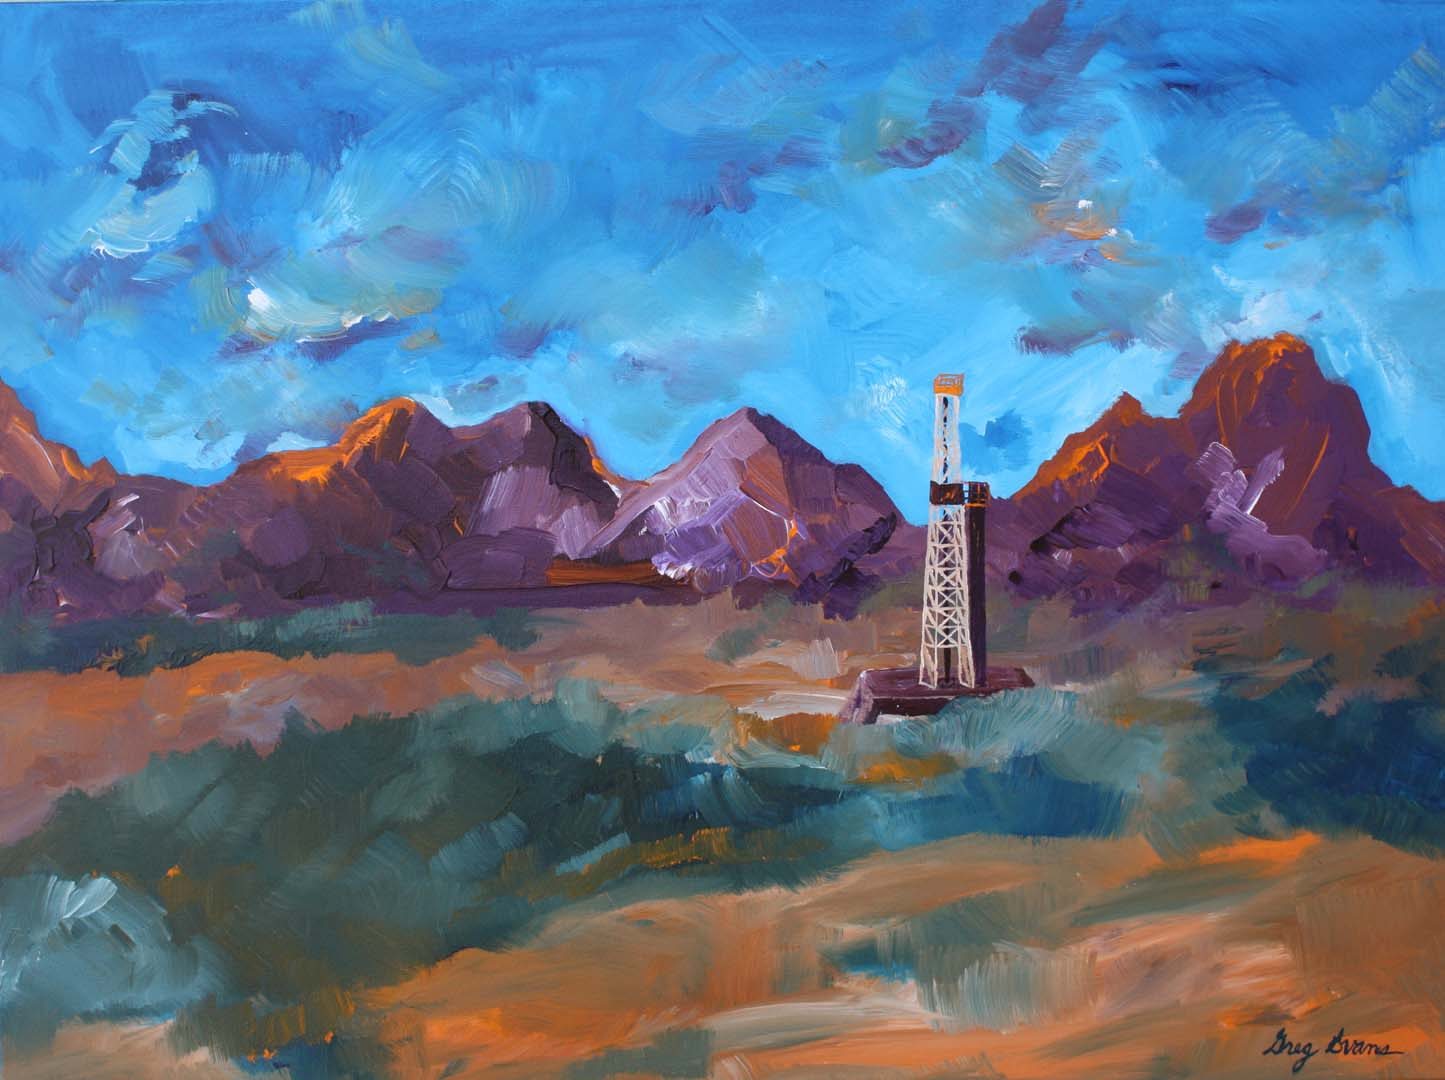 Watercolor art galleries in houston - Mountain And Meadow 3 22